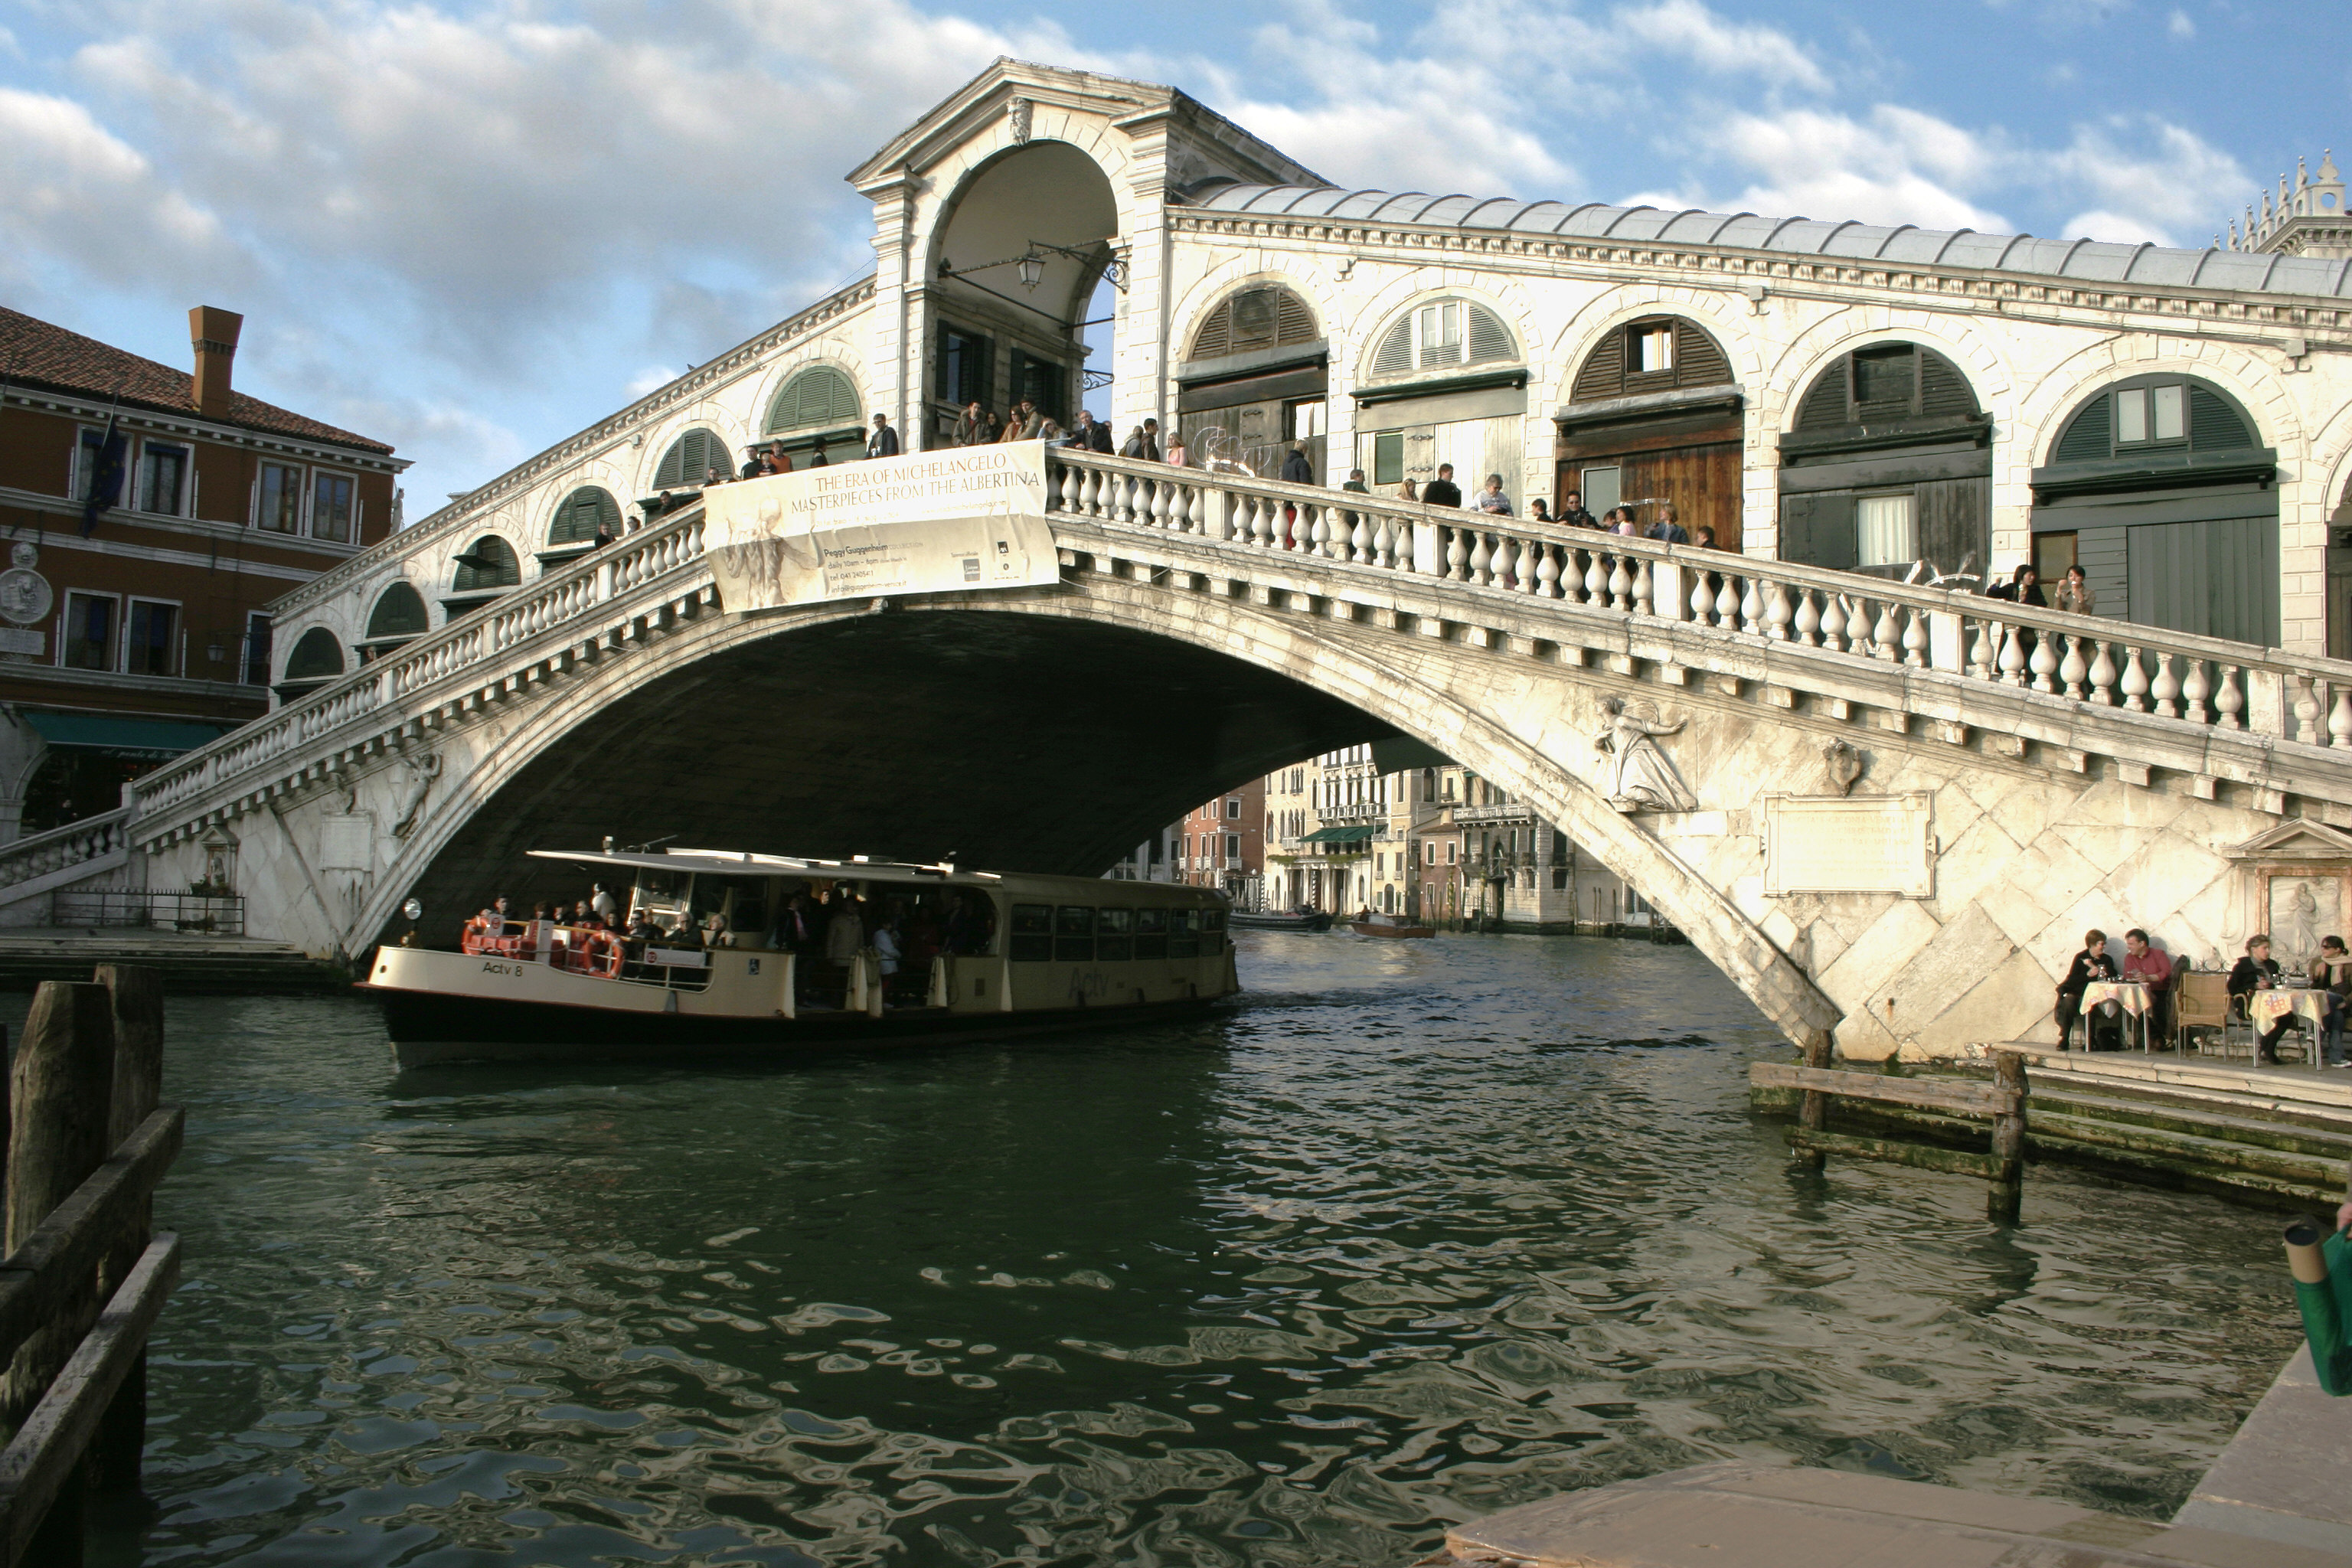 File:Venice - Rialto Bridge - 01 - Wikimedia Commons